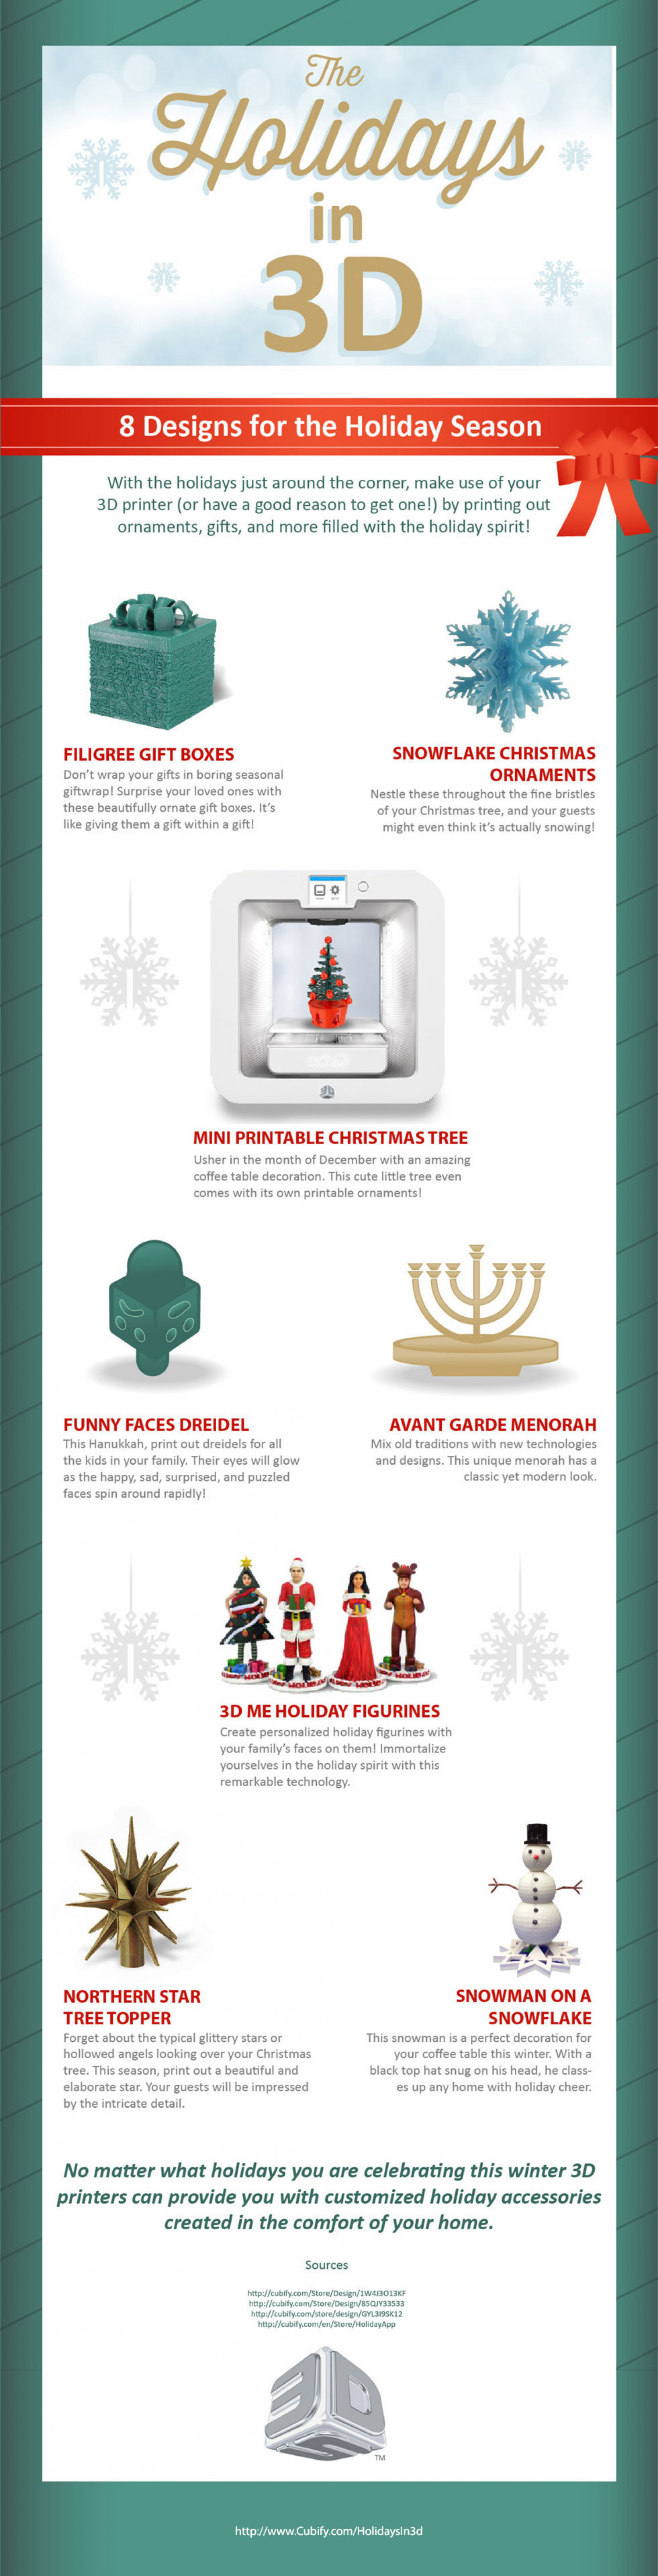 Holidays in 3D Infographic